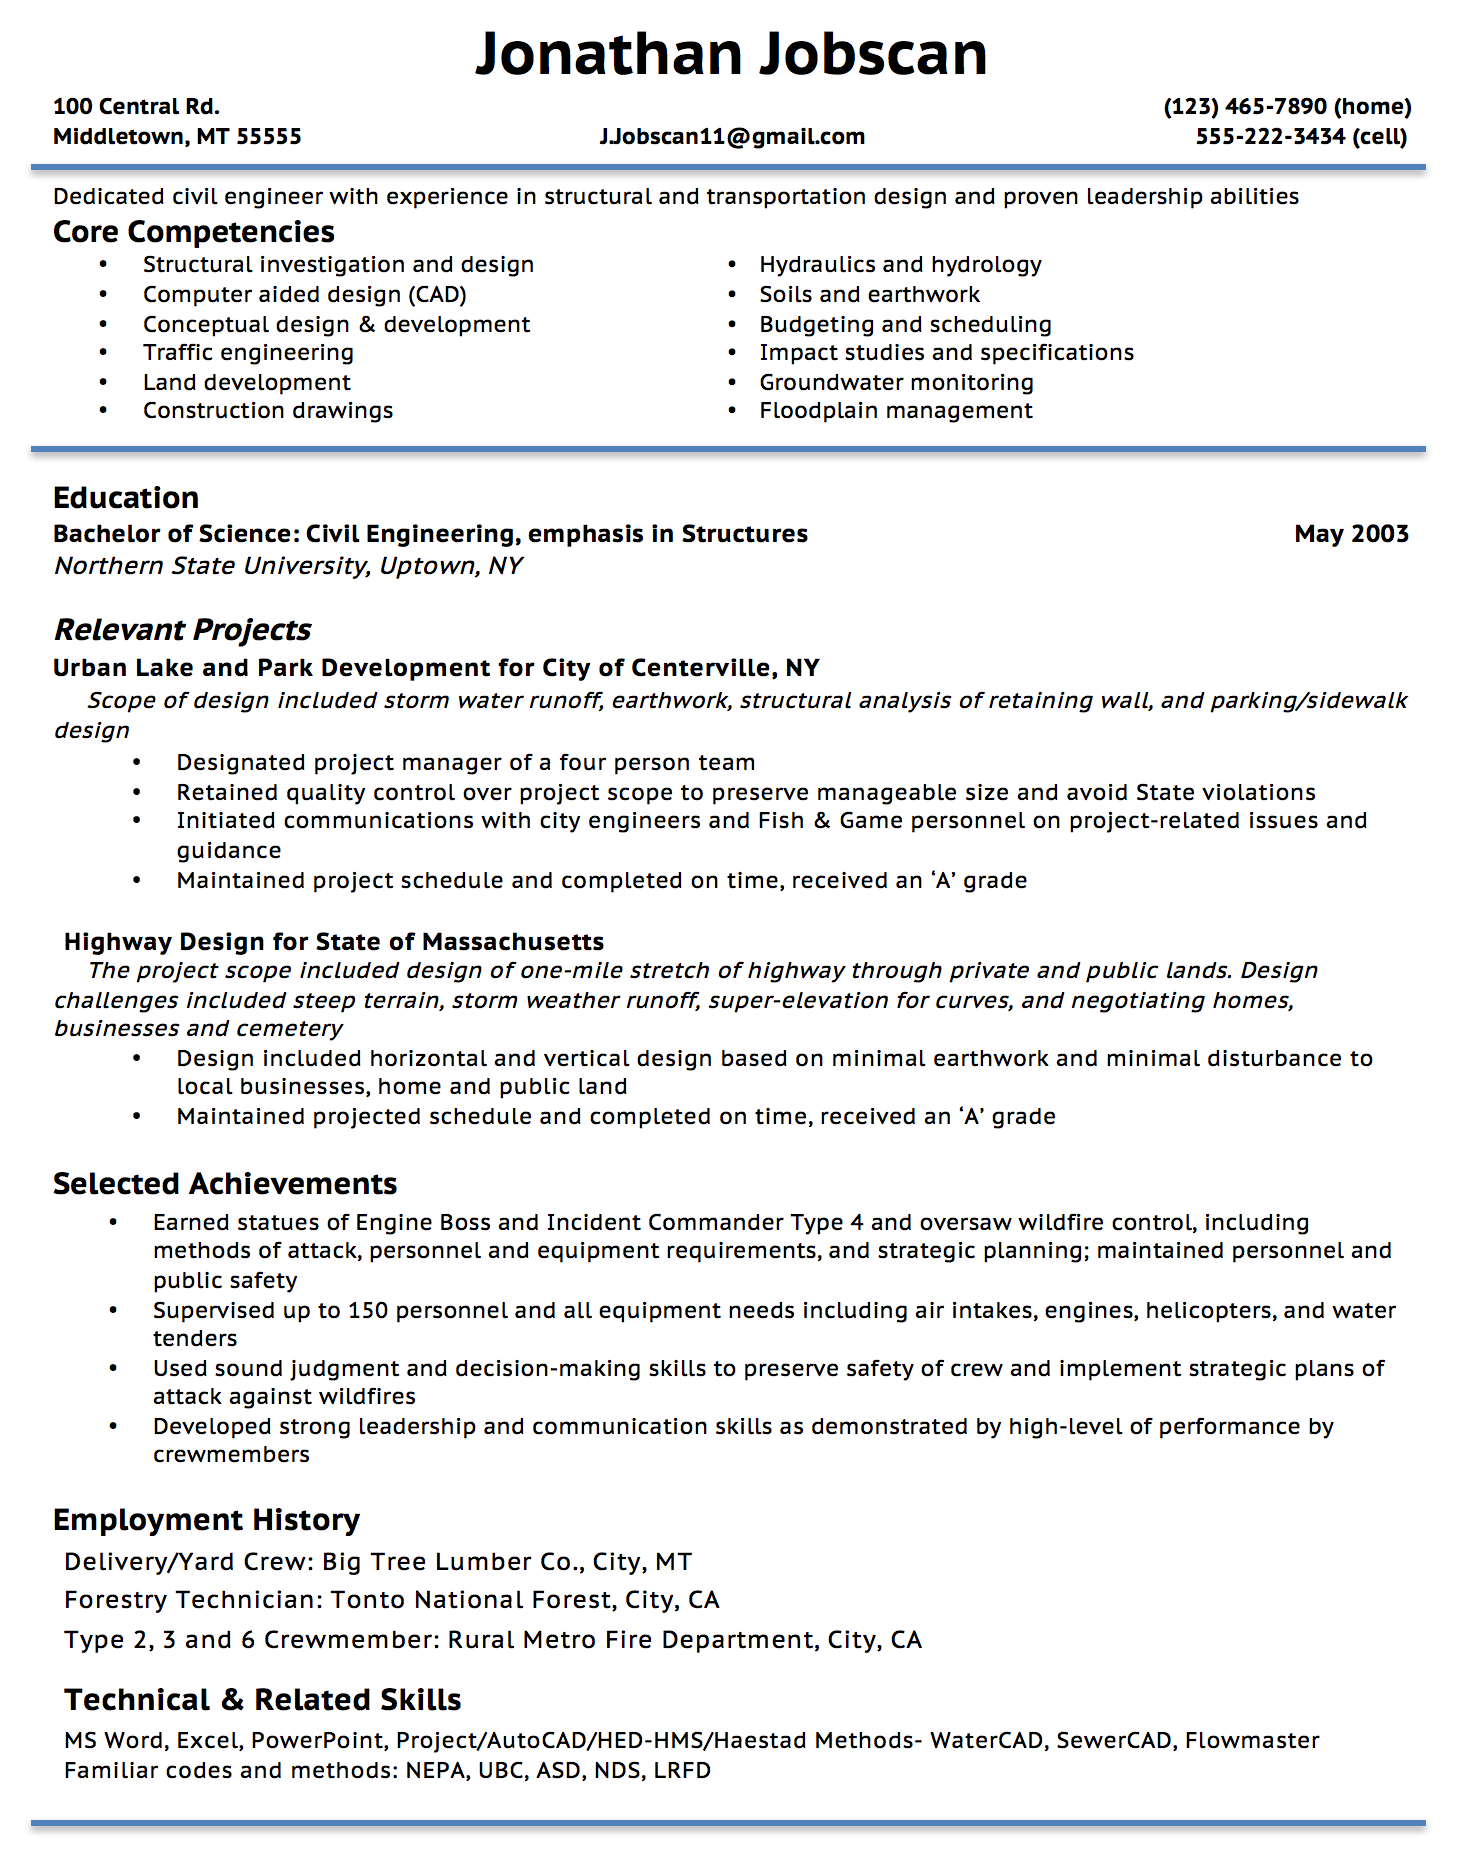 Functional Resume Example  Hints For Good Resumes